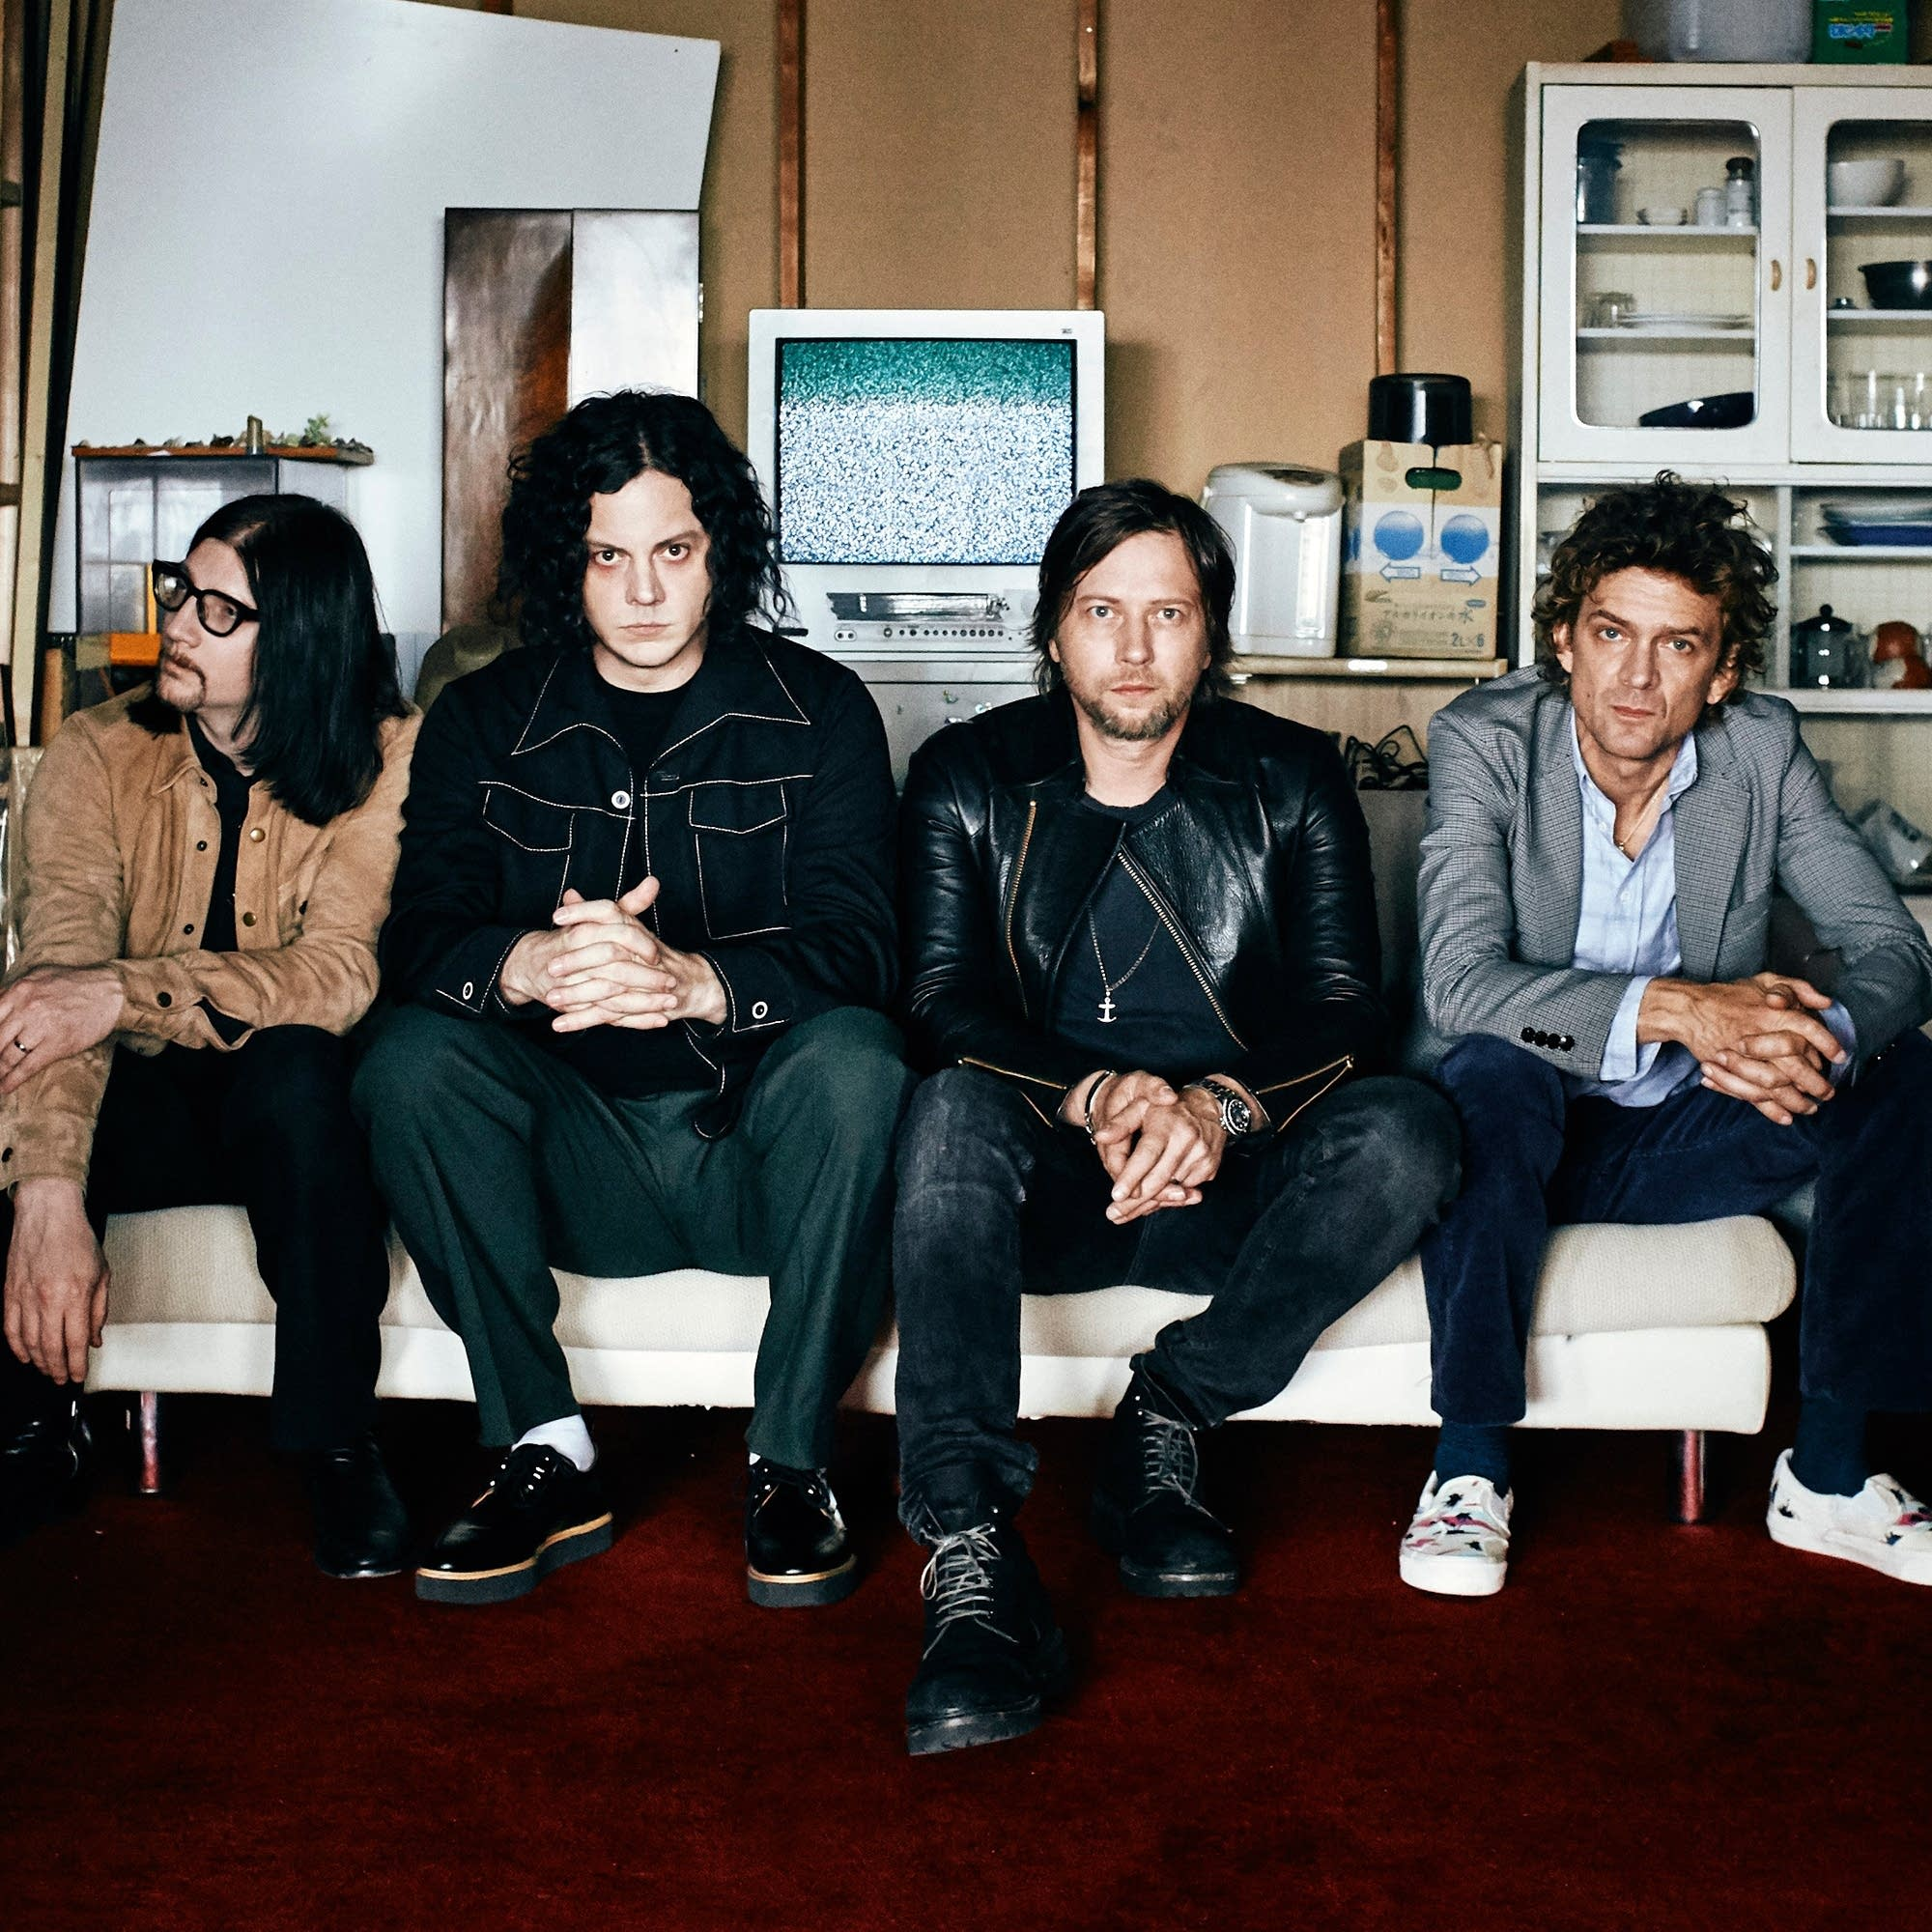 The Raconteurs 2019 press photo